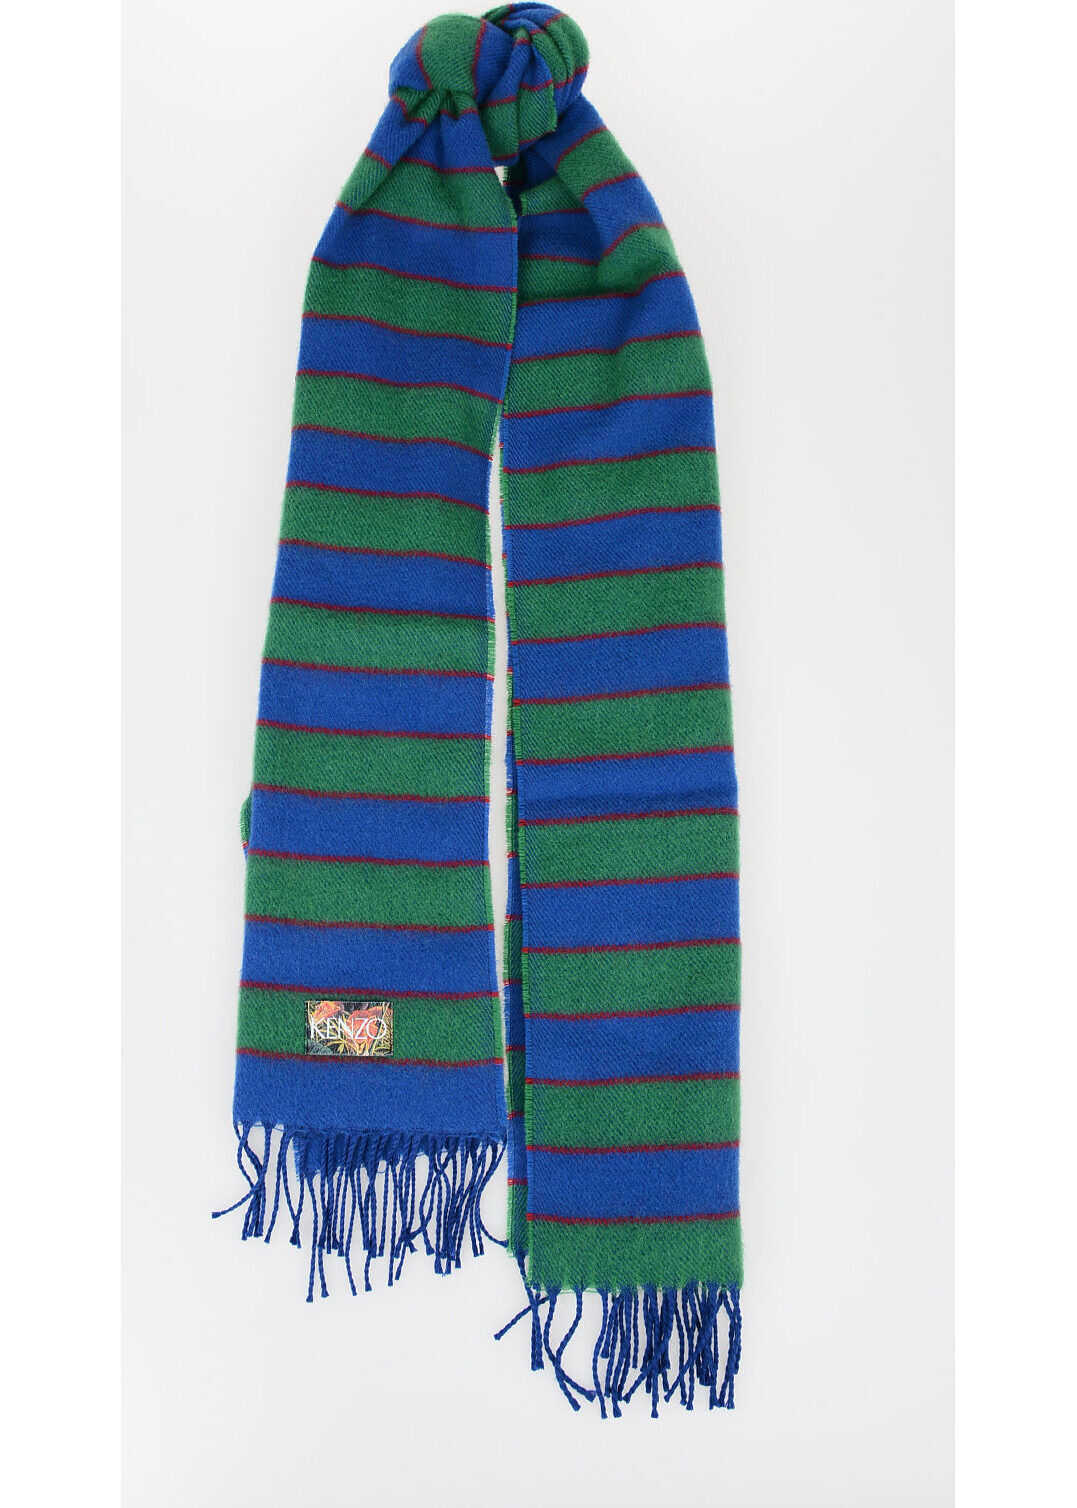 Kenzo MEMENTO COLLECTION 3 Wool Striped Scarf MULTICOLOR